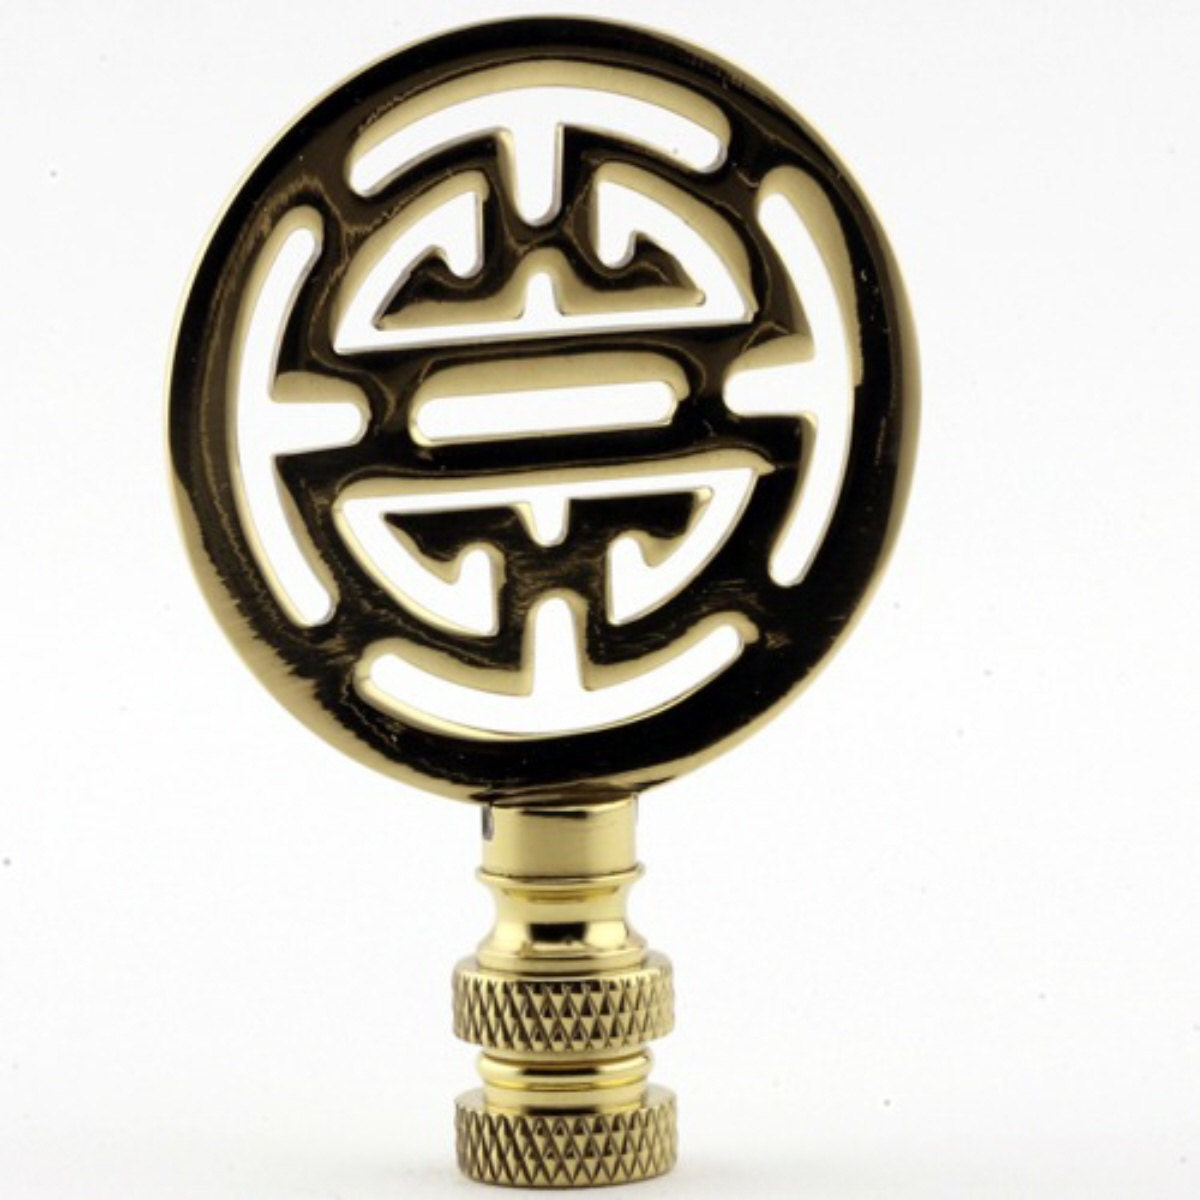 LAMP FINIAL Asian Classic Polished Brass